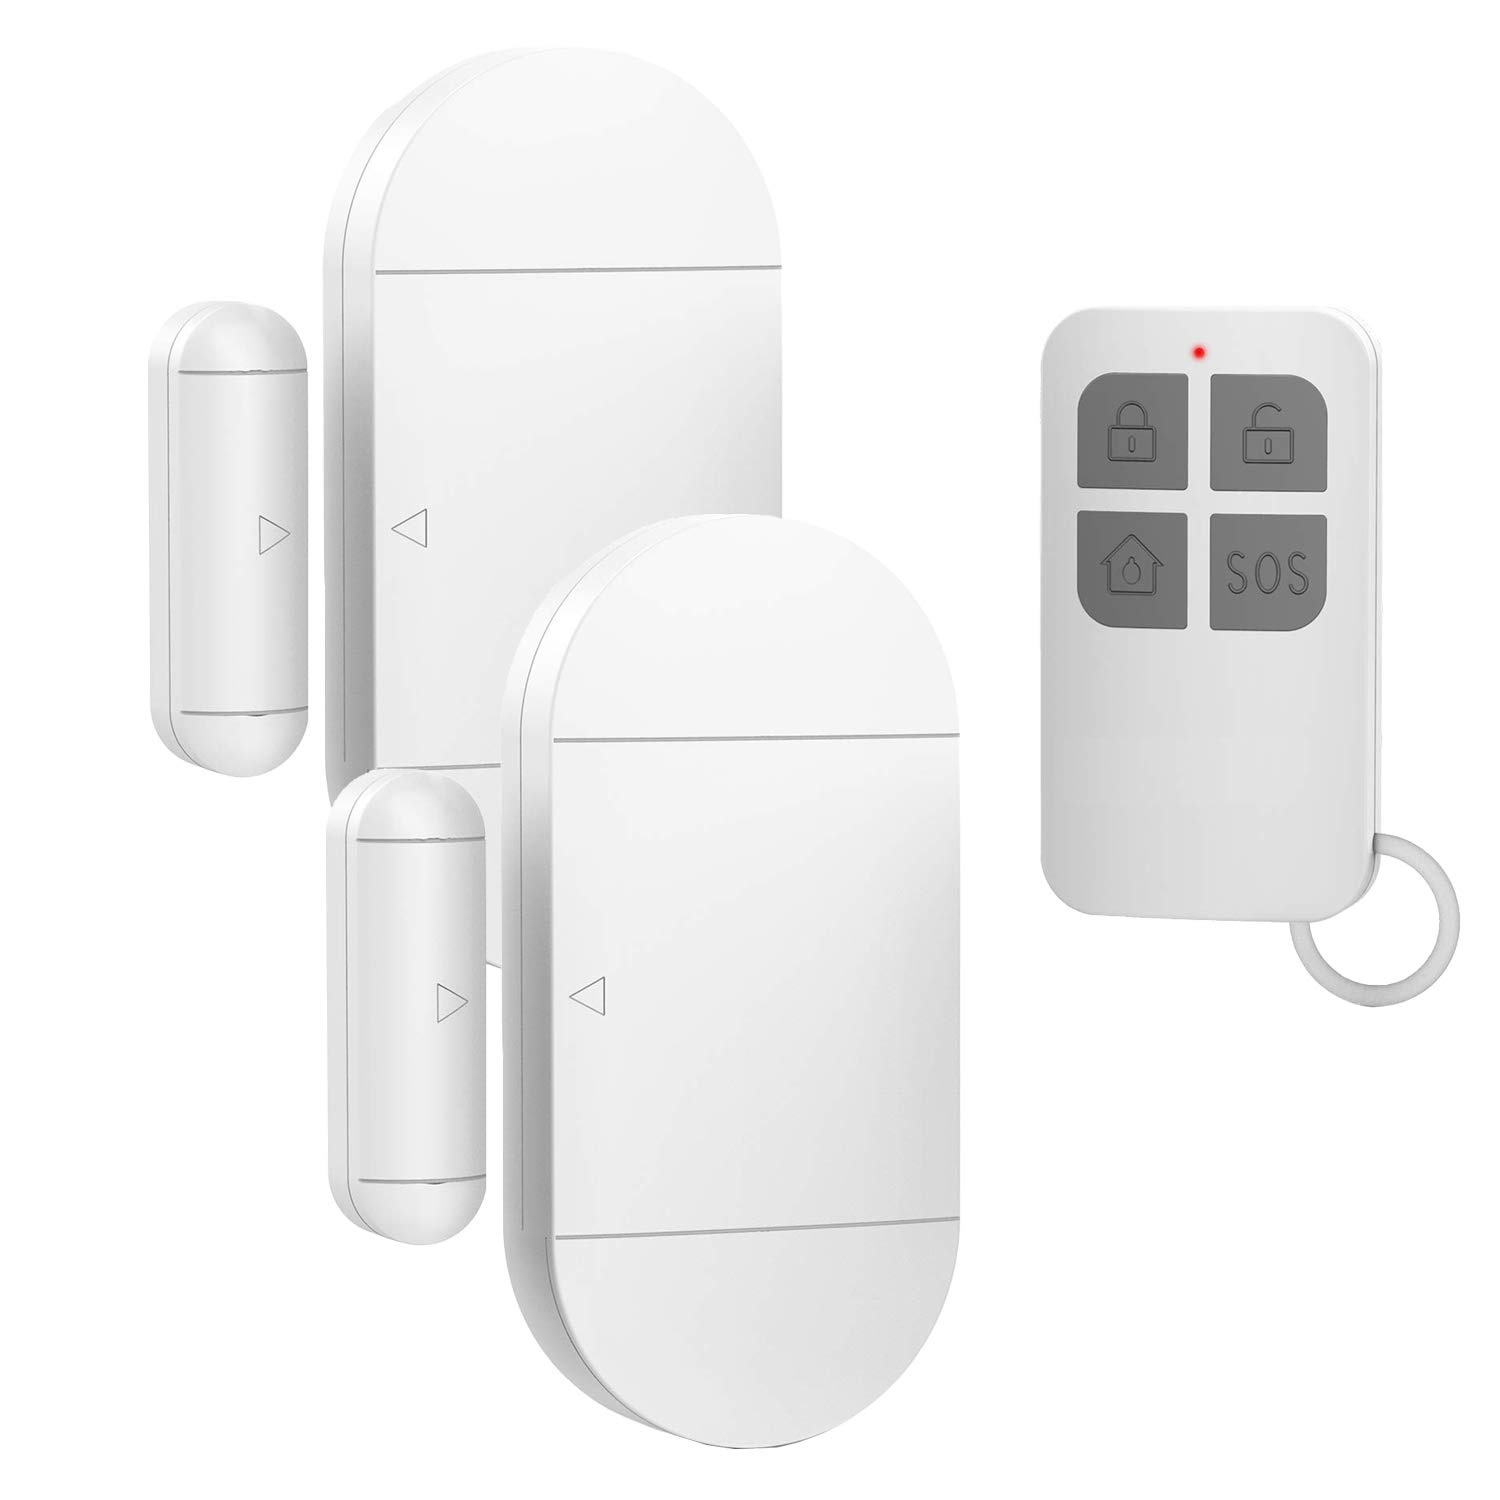 Door Window Pool Alarm,130dB Wireless Magnetic Sensor Anti-Theft Door Alarms for Kids Safety,Home Store Garage Apartment Business Security (2 Alarm Sensors + 1 Remote Control) by EverNary